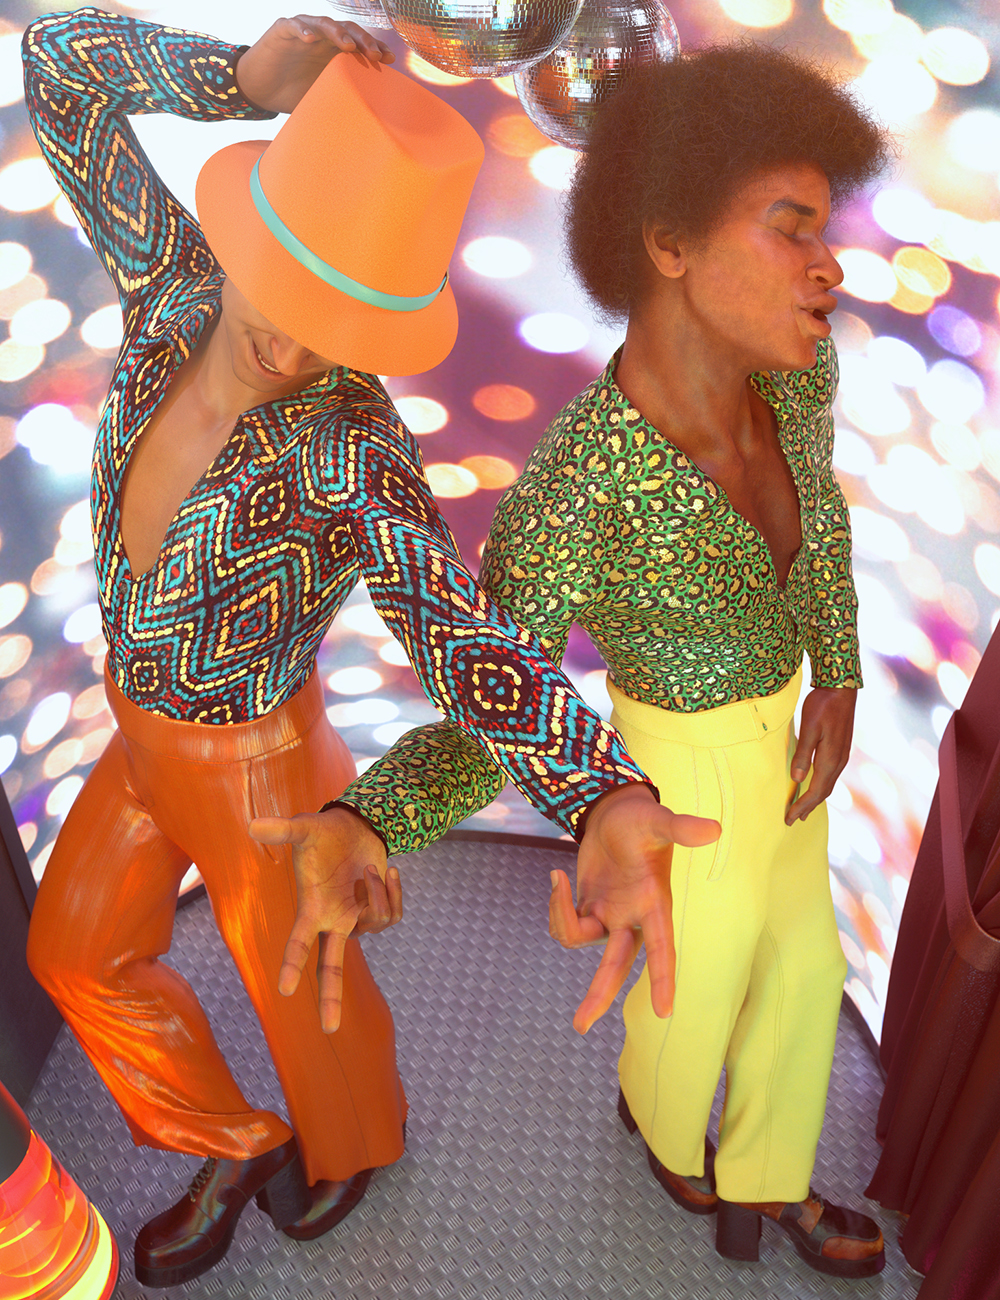 dForce Disco Boogie Outfit Textures by: 3D-GHDesignSade, 3D Models by Daz 3D